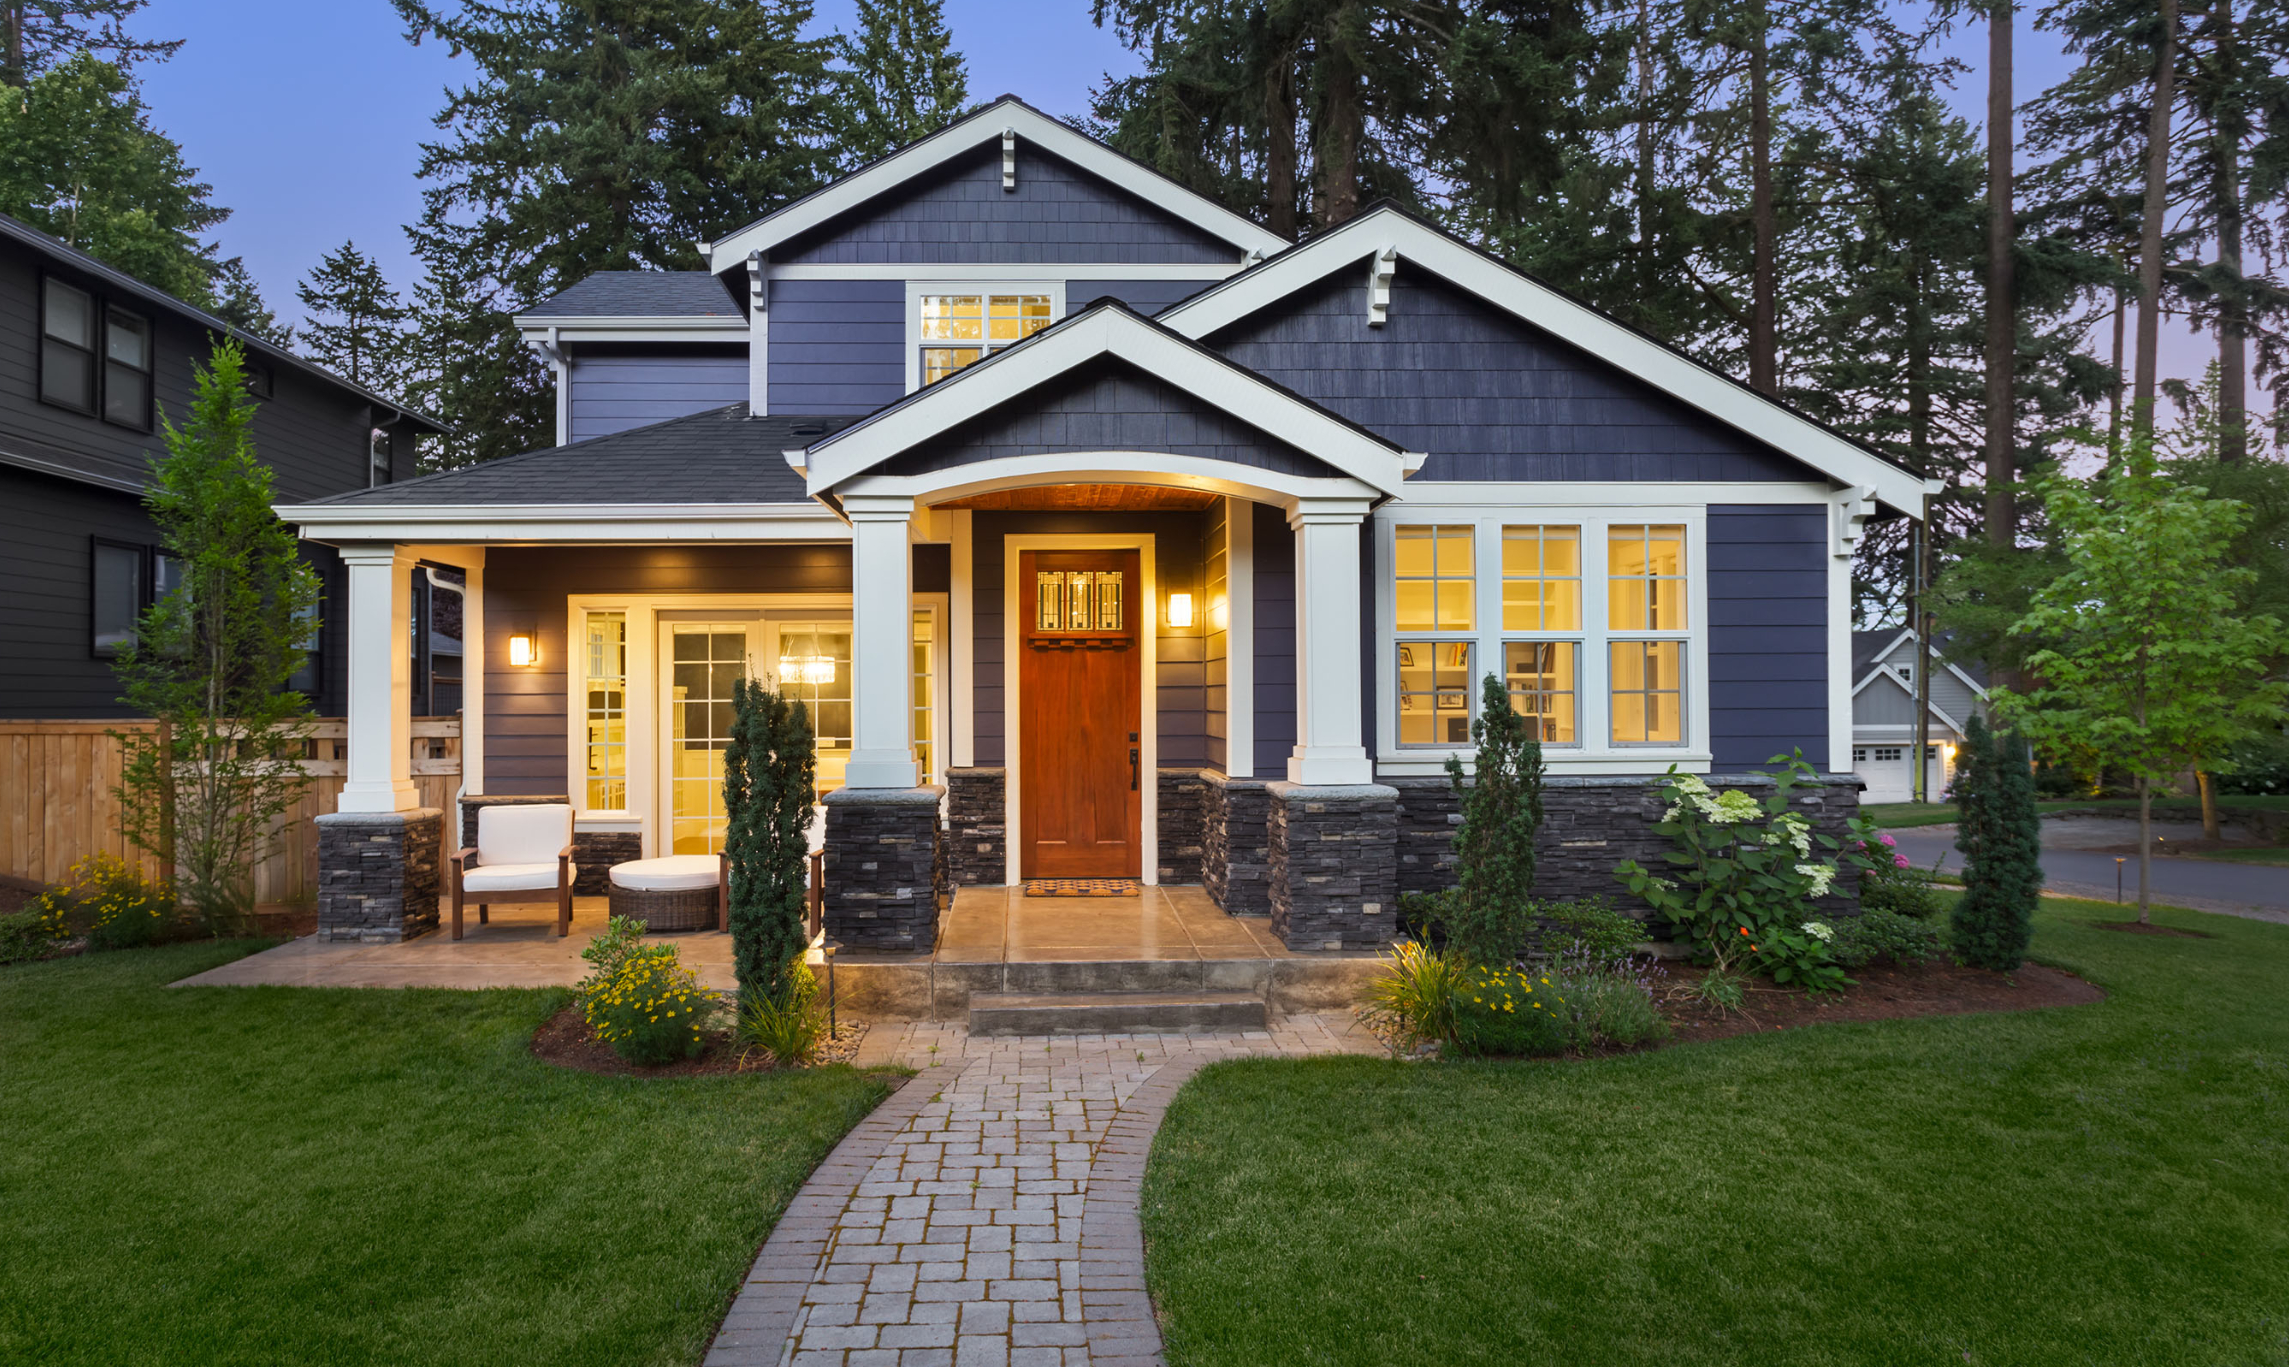 7 Reasons Why Some Houses Fail To Sell?